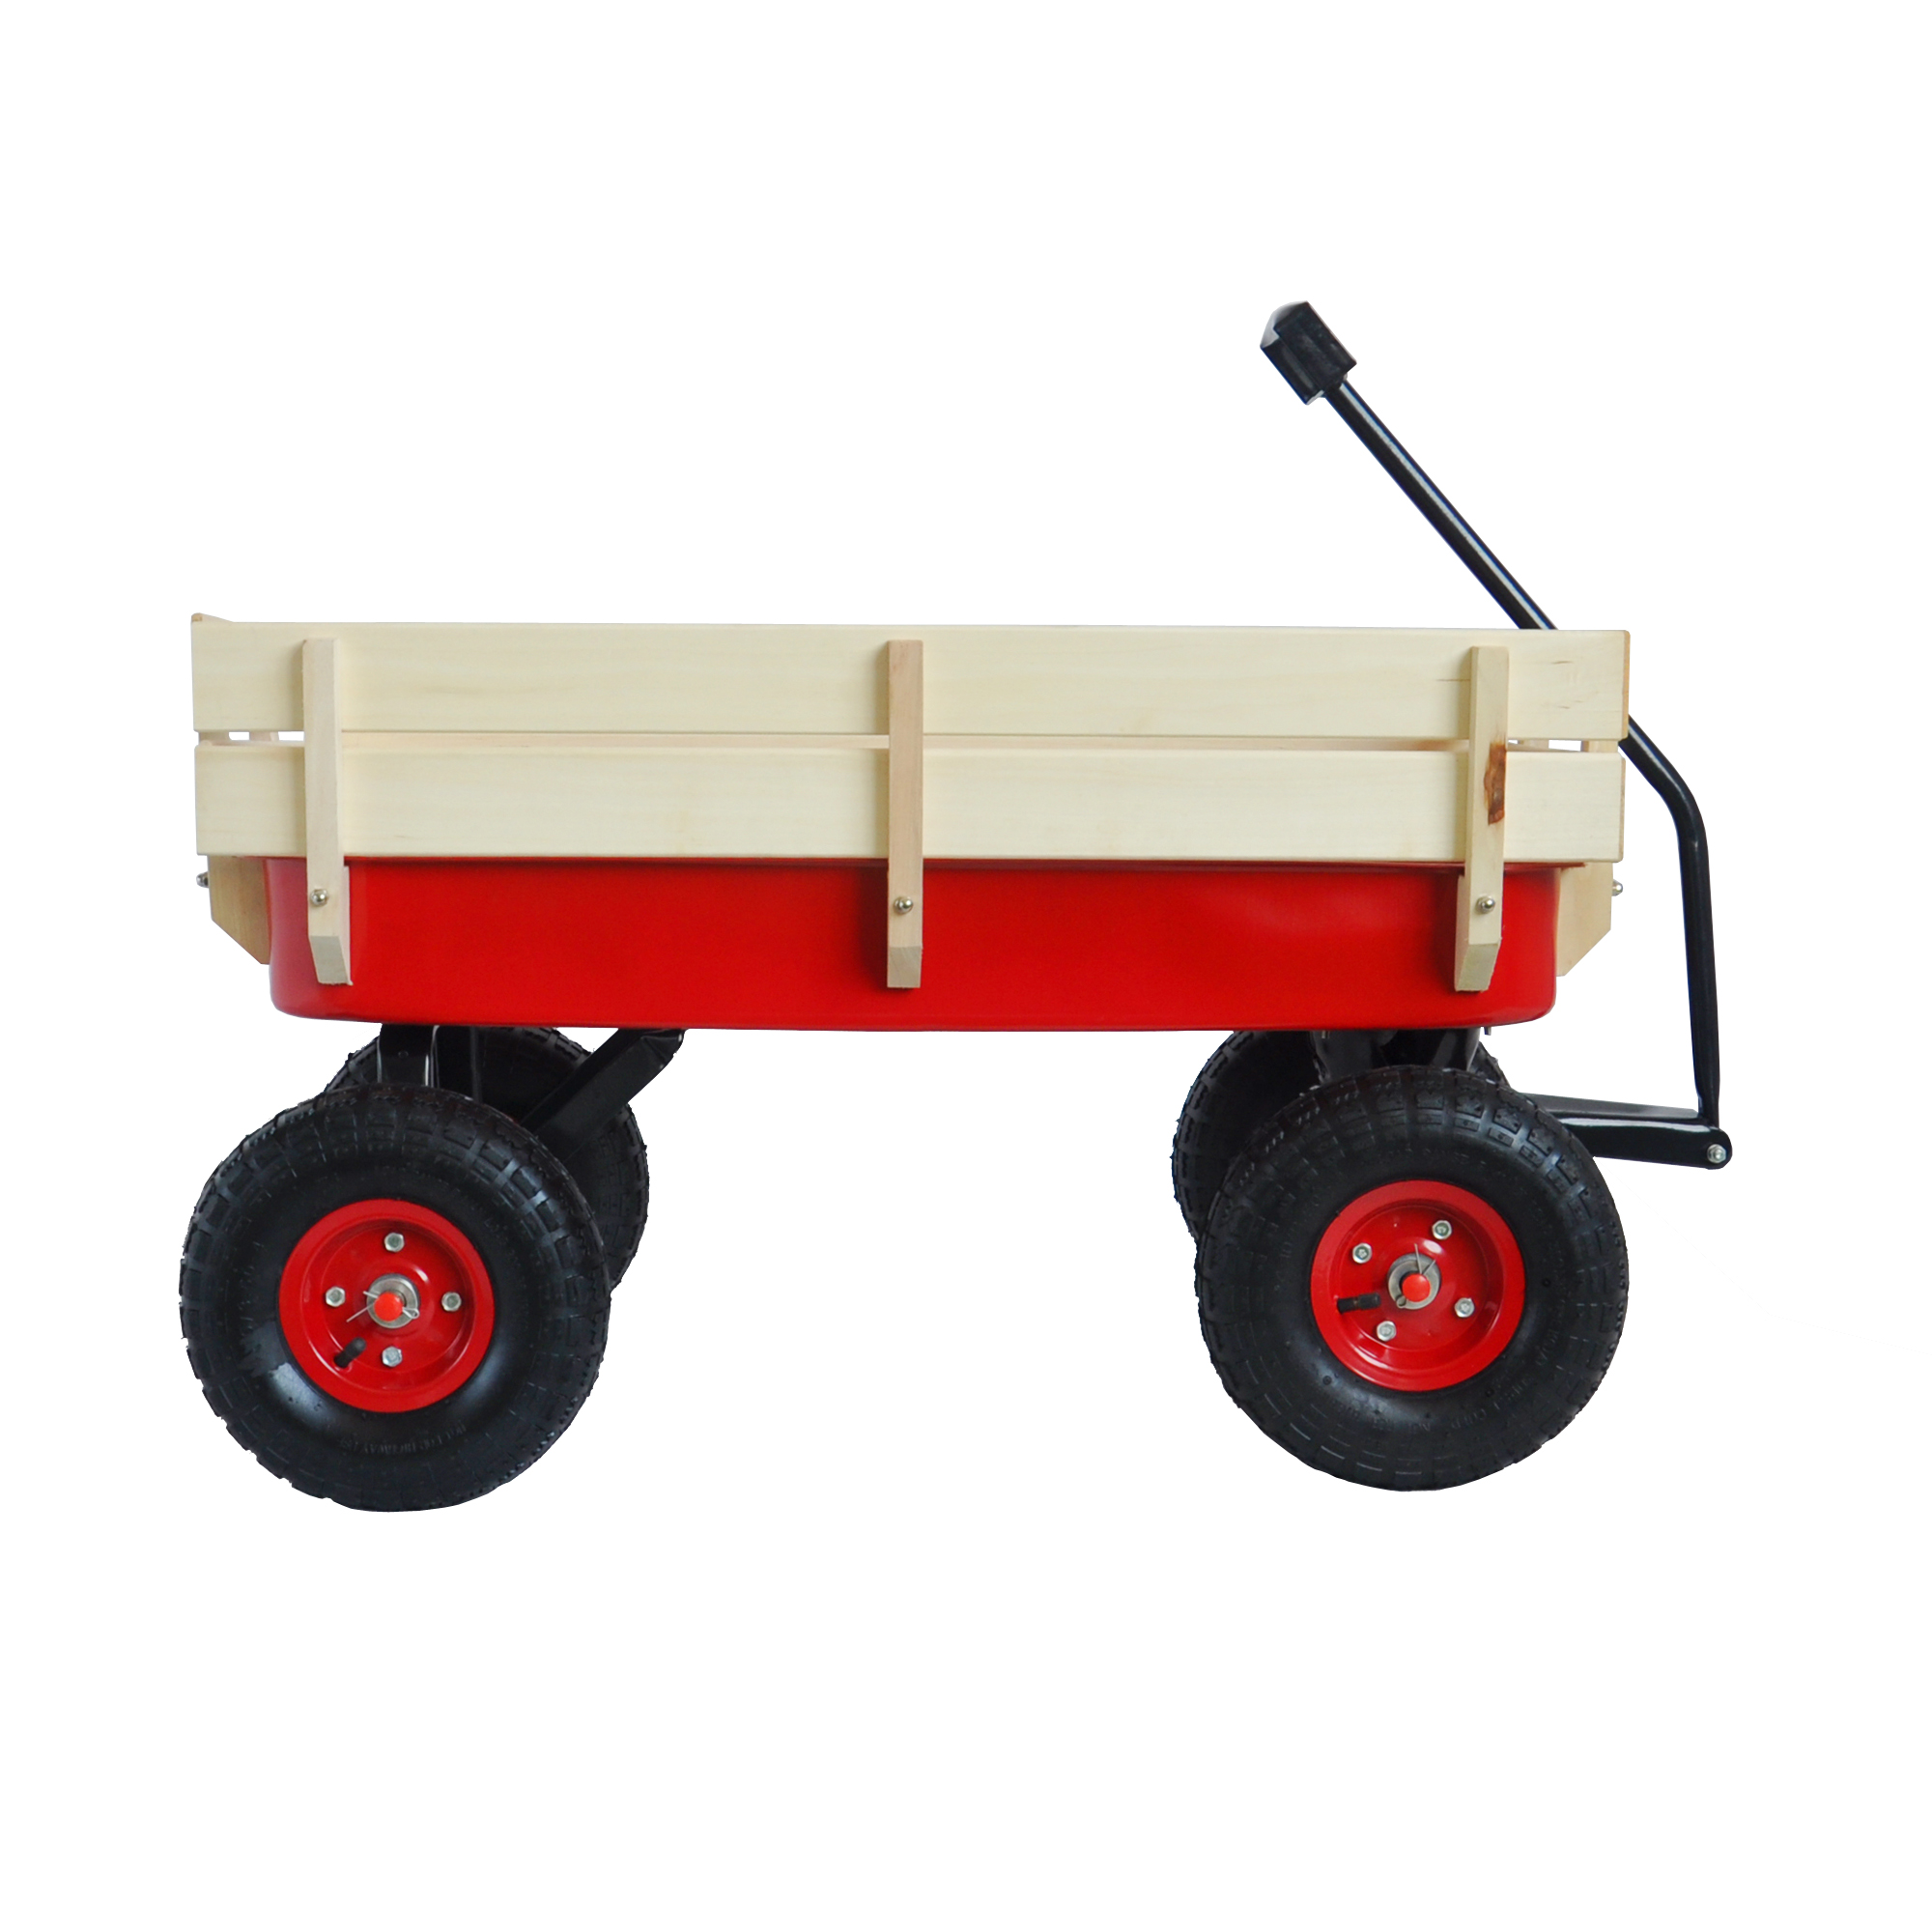 Beach Carts With Big Wheels Toy Wagons For Kids To Pull All Terrain Utility Wagon W Removable Wooden Panels 10 Rubber Wheels Heavy Duty Beach Cart For Outdoor Camping Children Wagon W1899